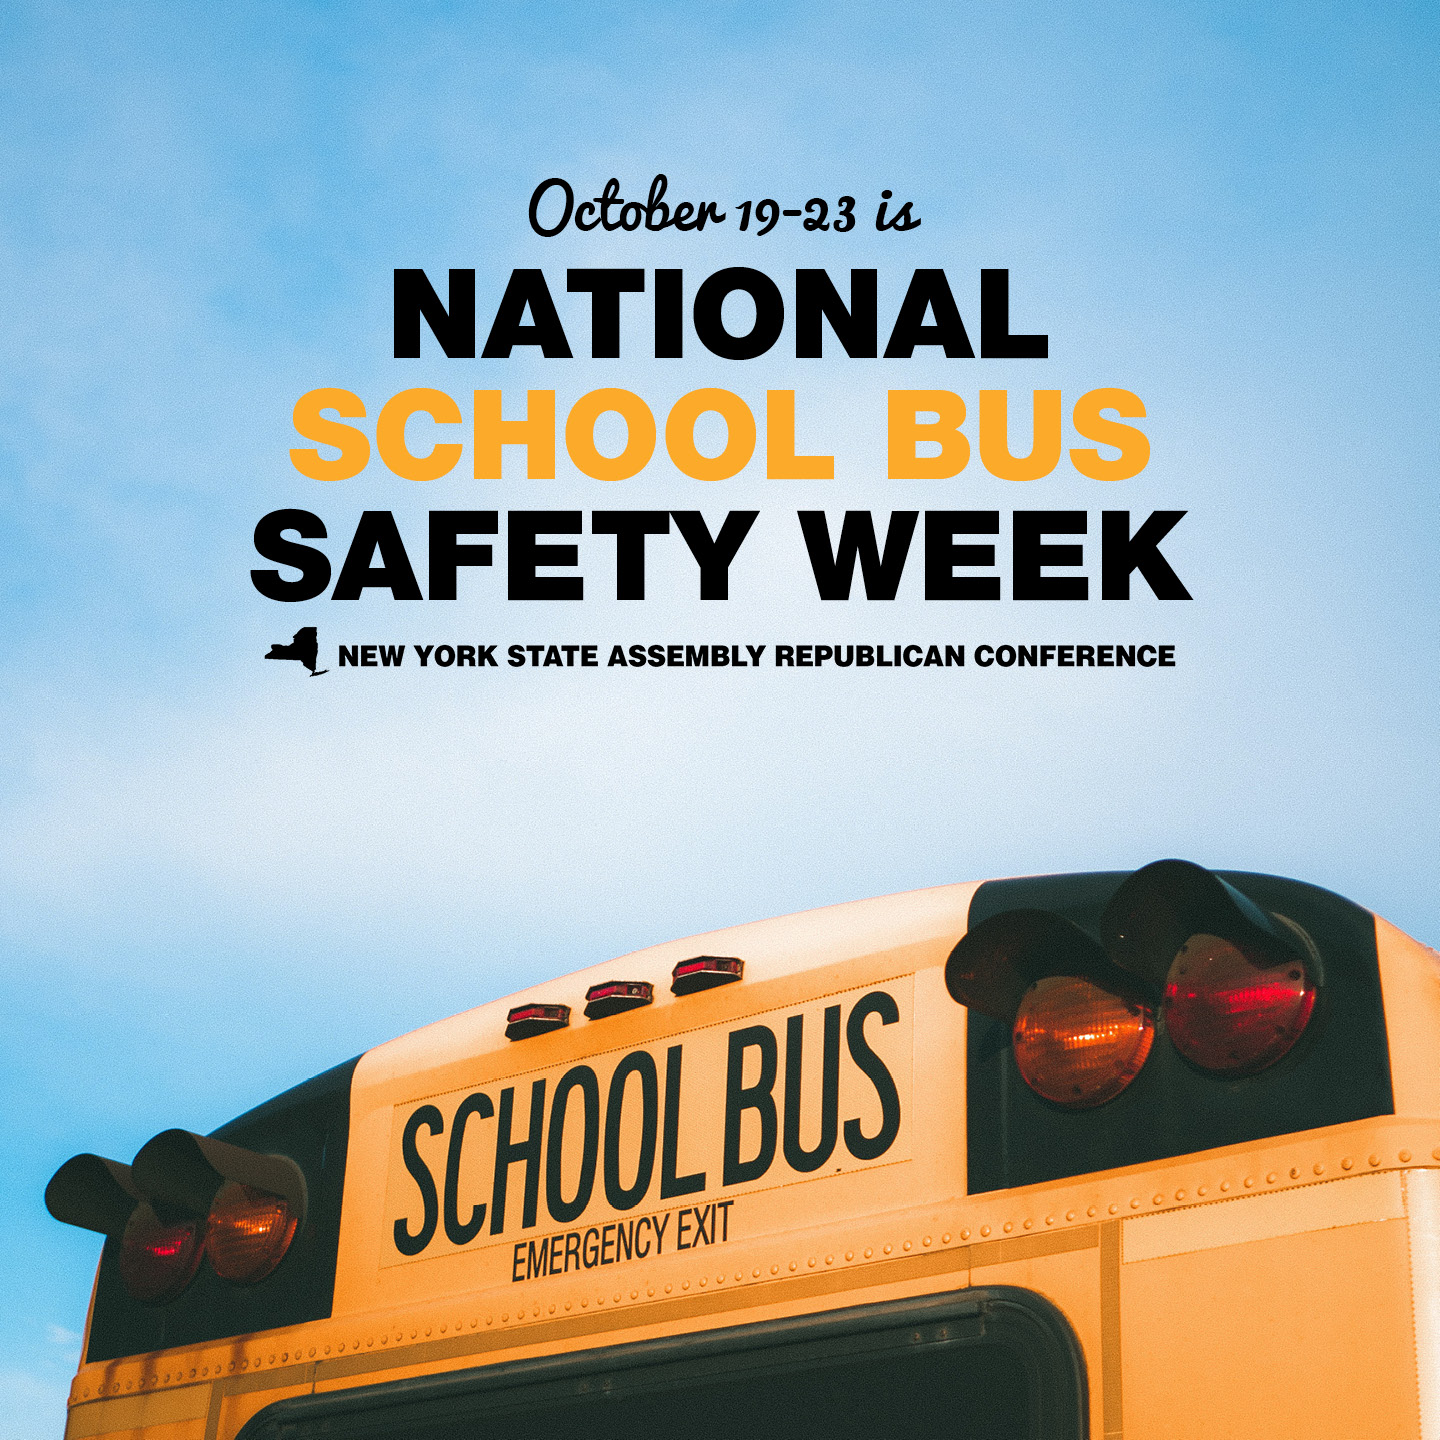 School_Bus_Safety_Week_October.jpg